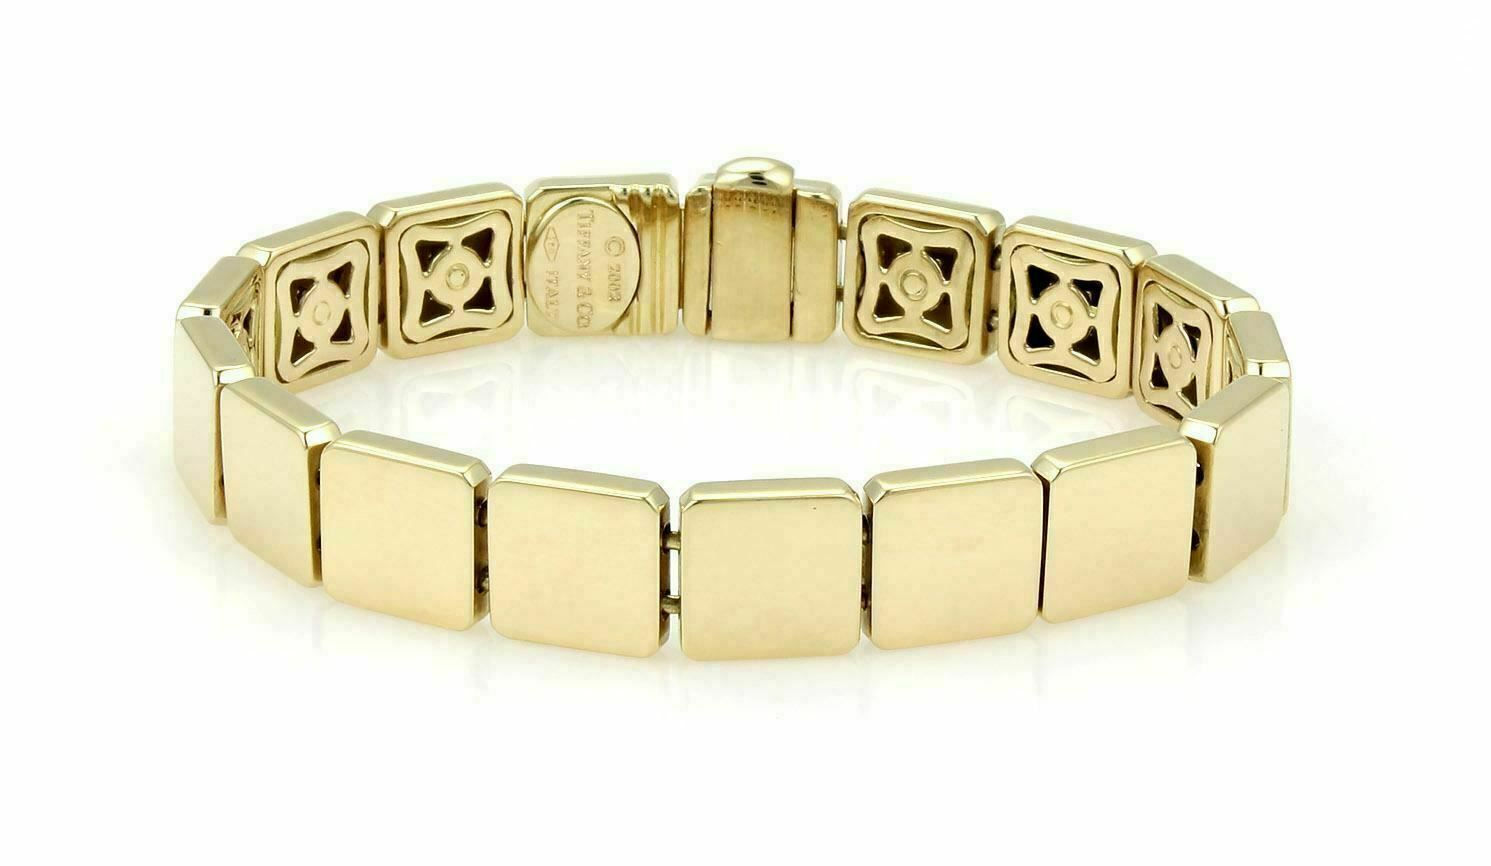 b4f80d4da8c88 Tiffany & Co. 18k Yellow Gold Solid Square Link Bracelet